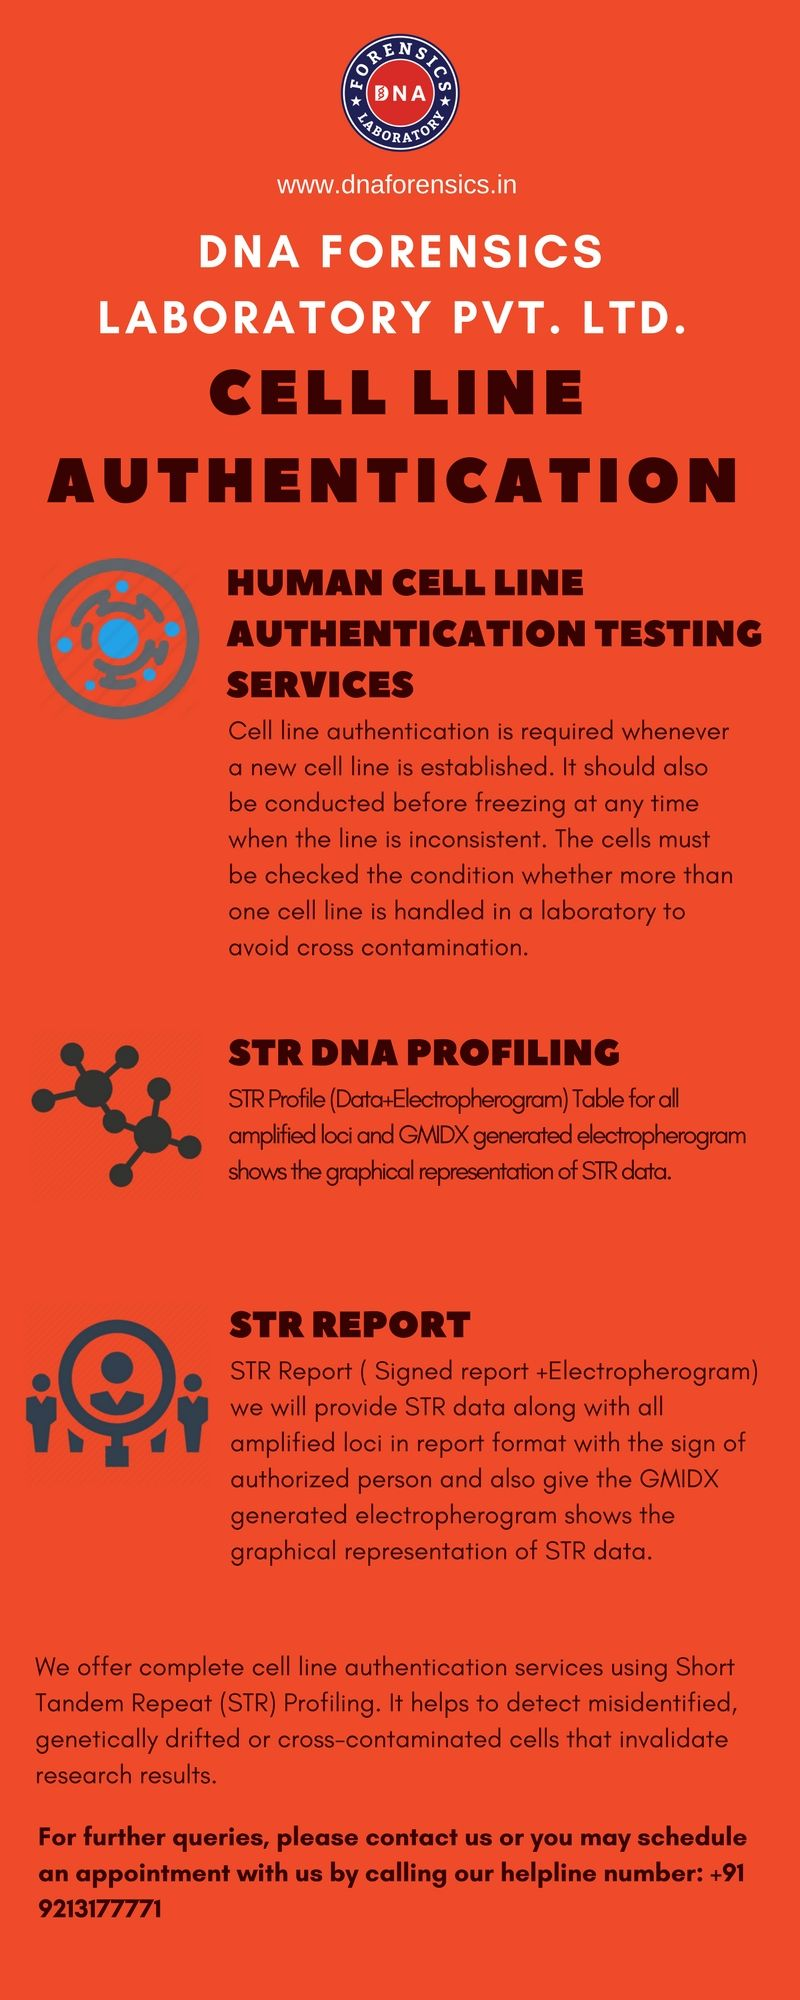 Cell line authentication dna forensics laboratory pvt